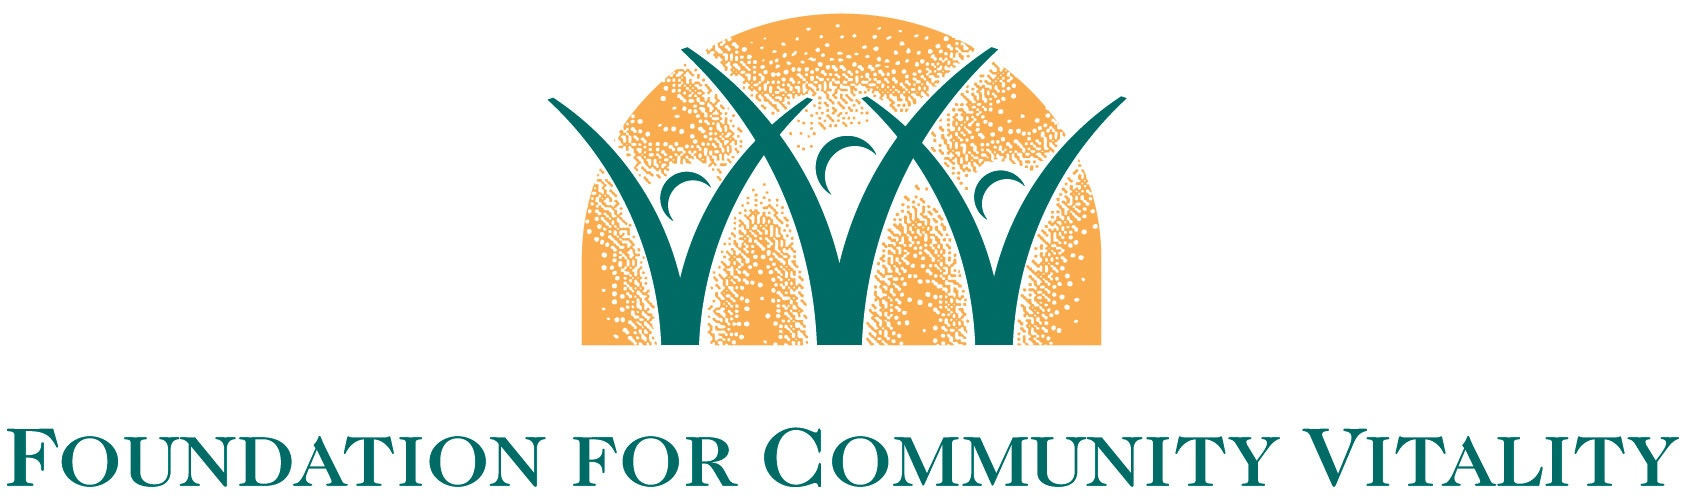 Foundation for Community Vitality